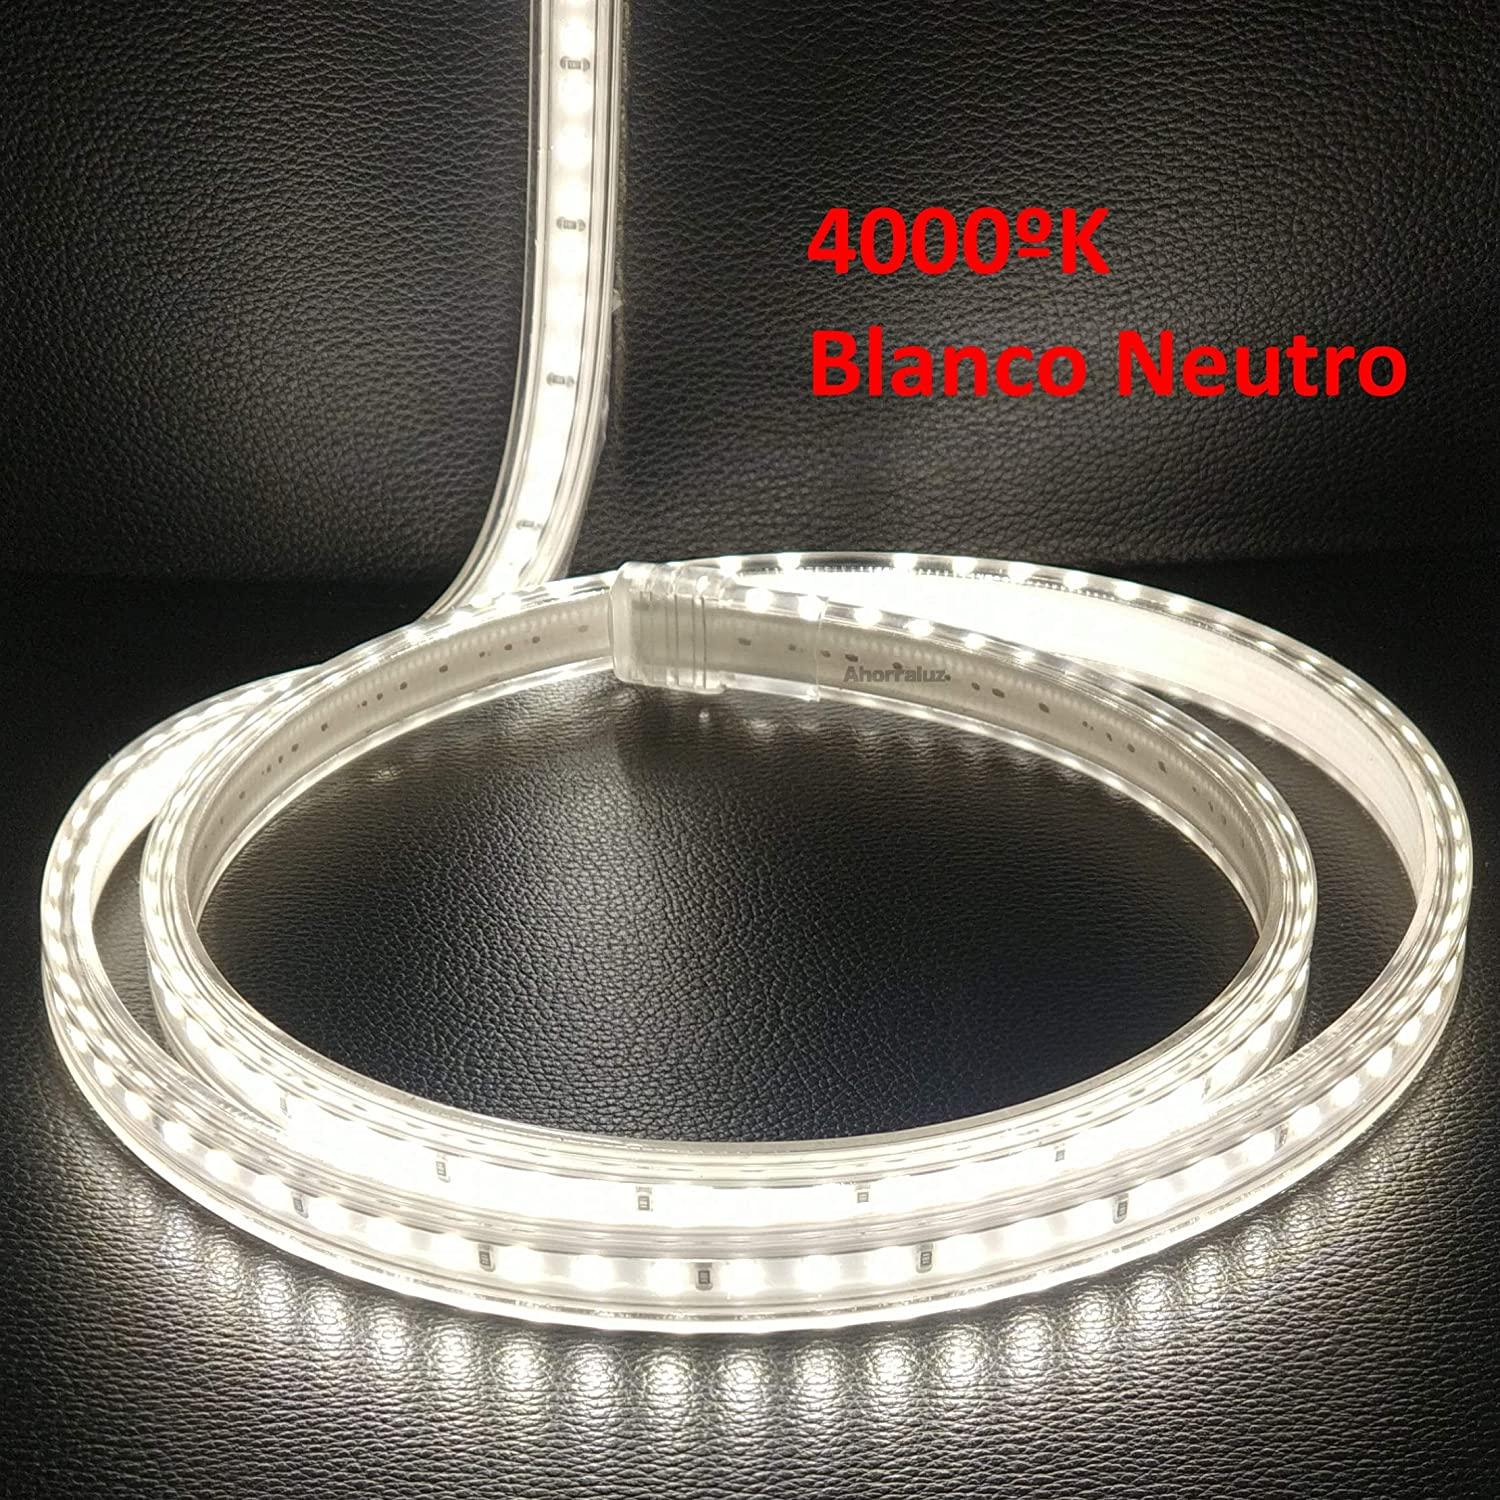 bande LED de 220/ V 2835/ 120/ LED//M haute luminosit/é avec interrupteur imperm/éable Blanc froid//neutre//chaud IP67 2,5M Blanc neutre